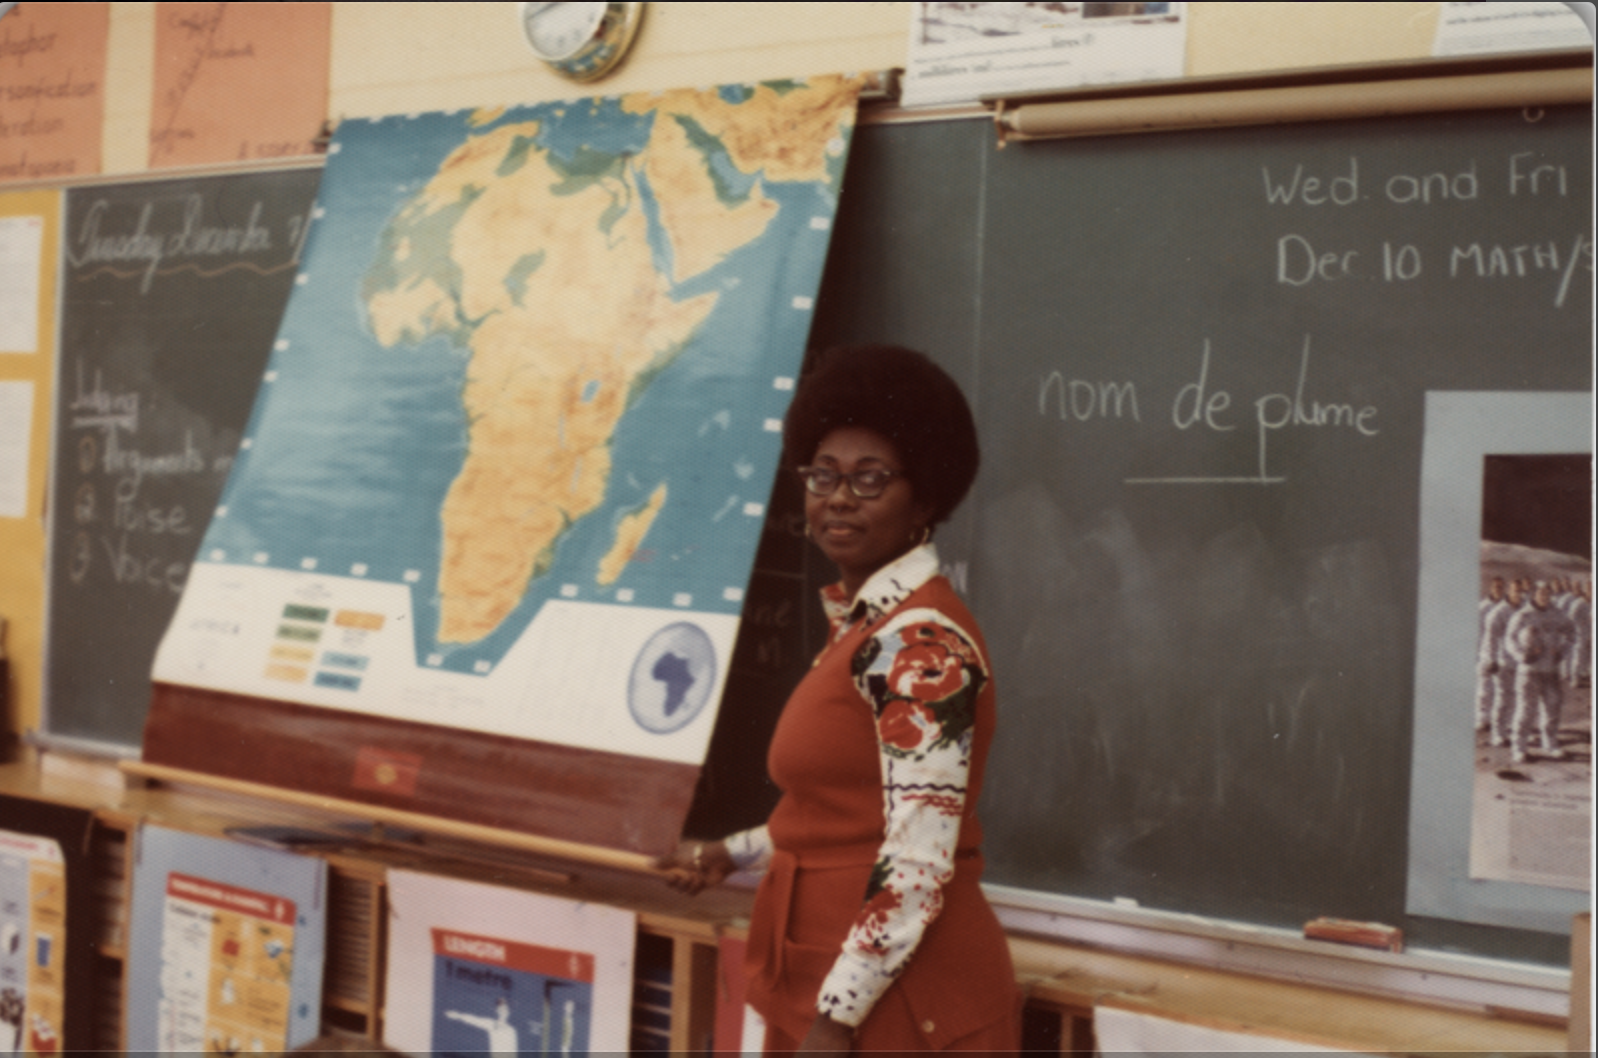 a woman stands in front of a blackboard